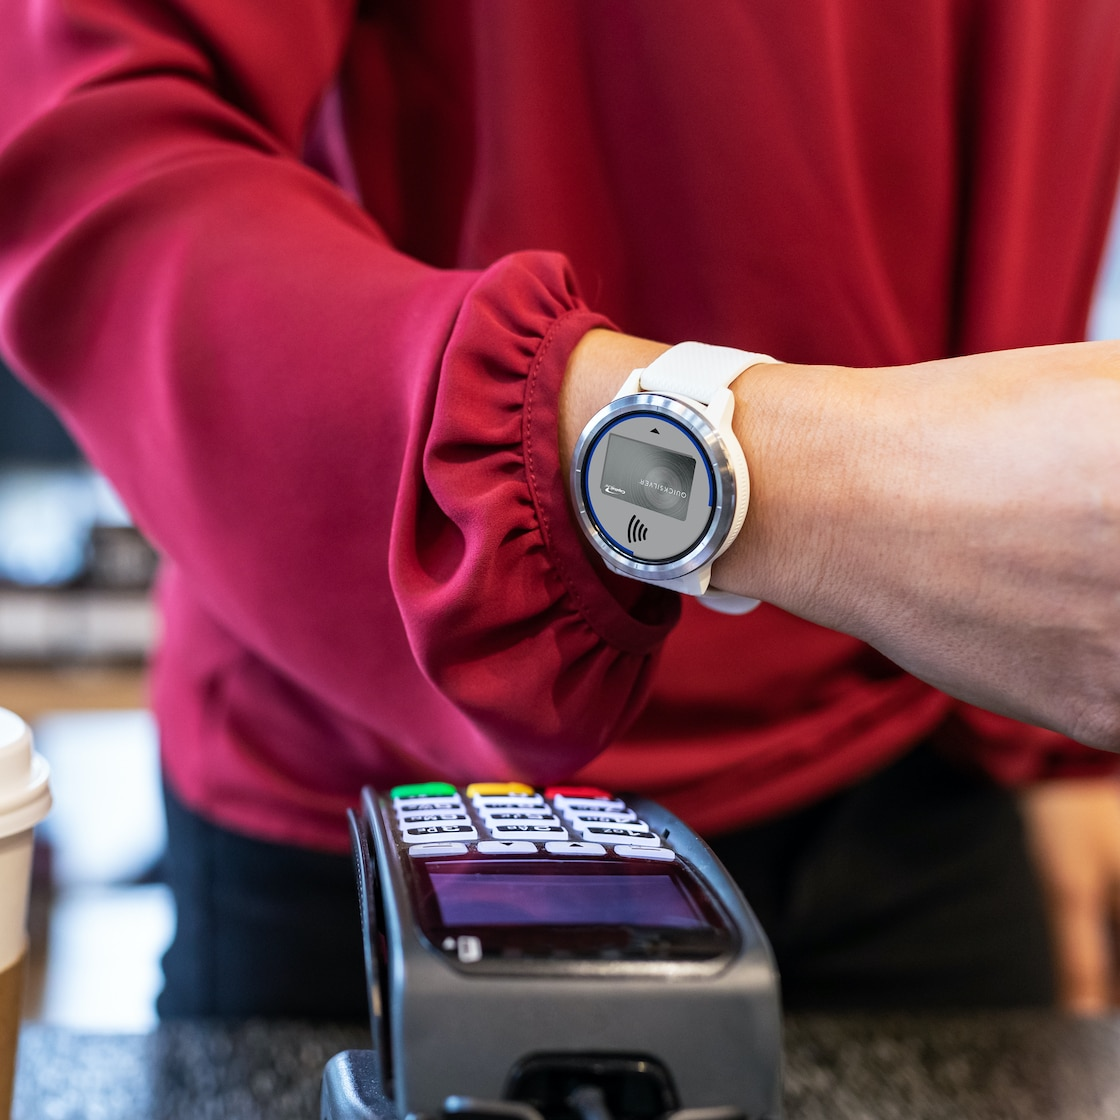 Paying with Garmin Pay